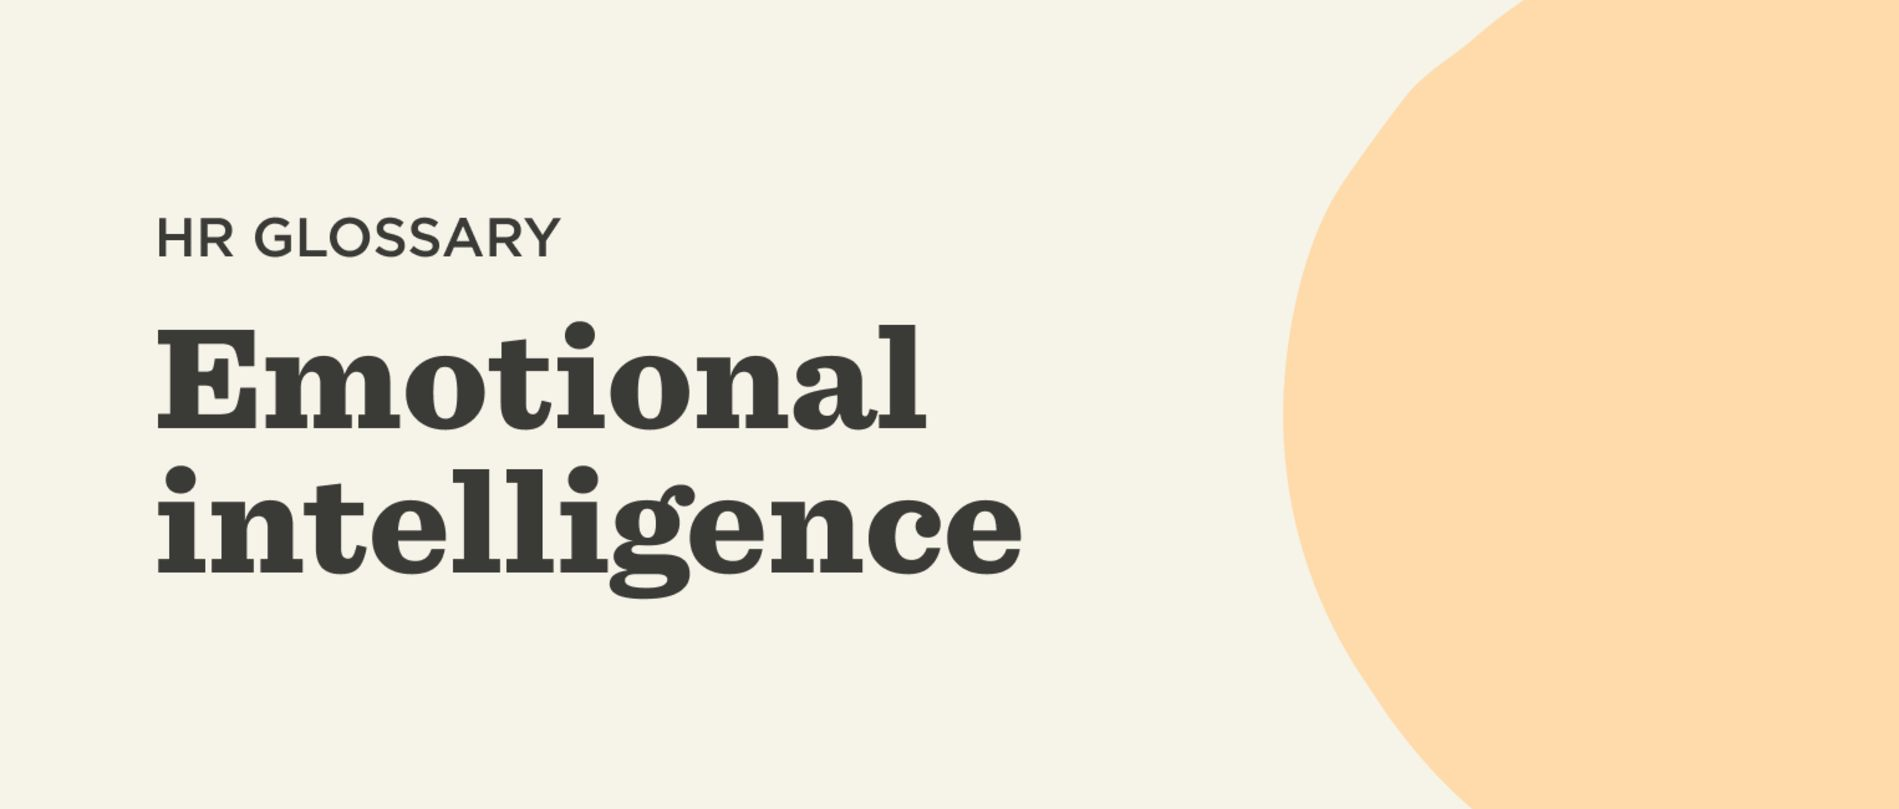 Emotional-intelligence-Glossary-banner